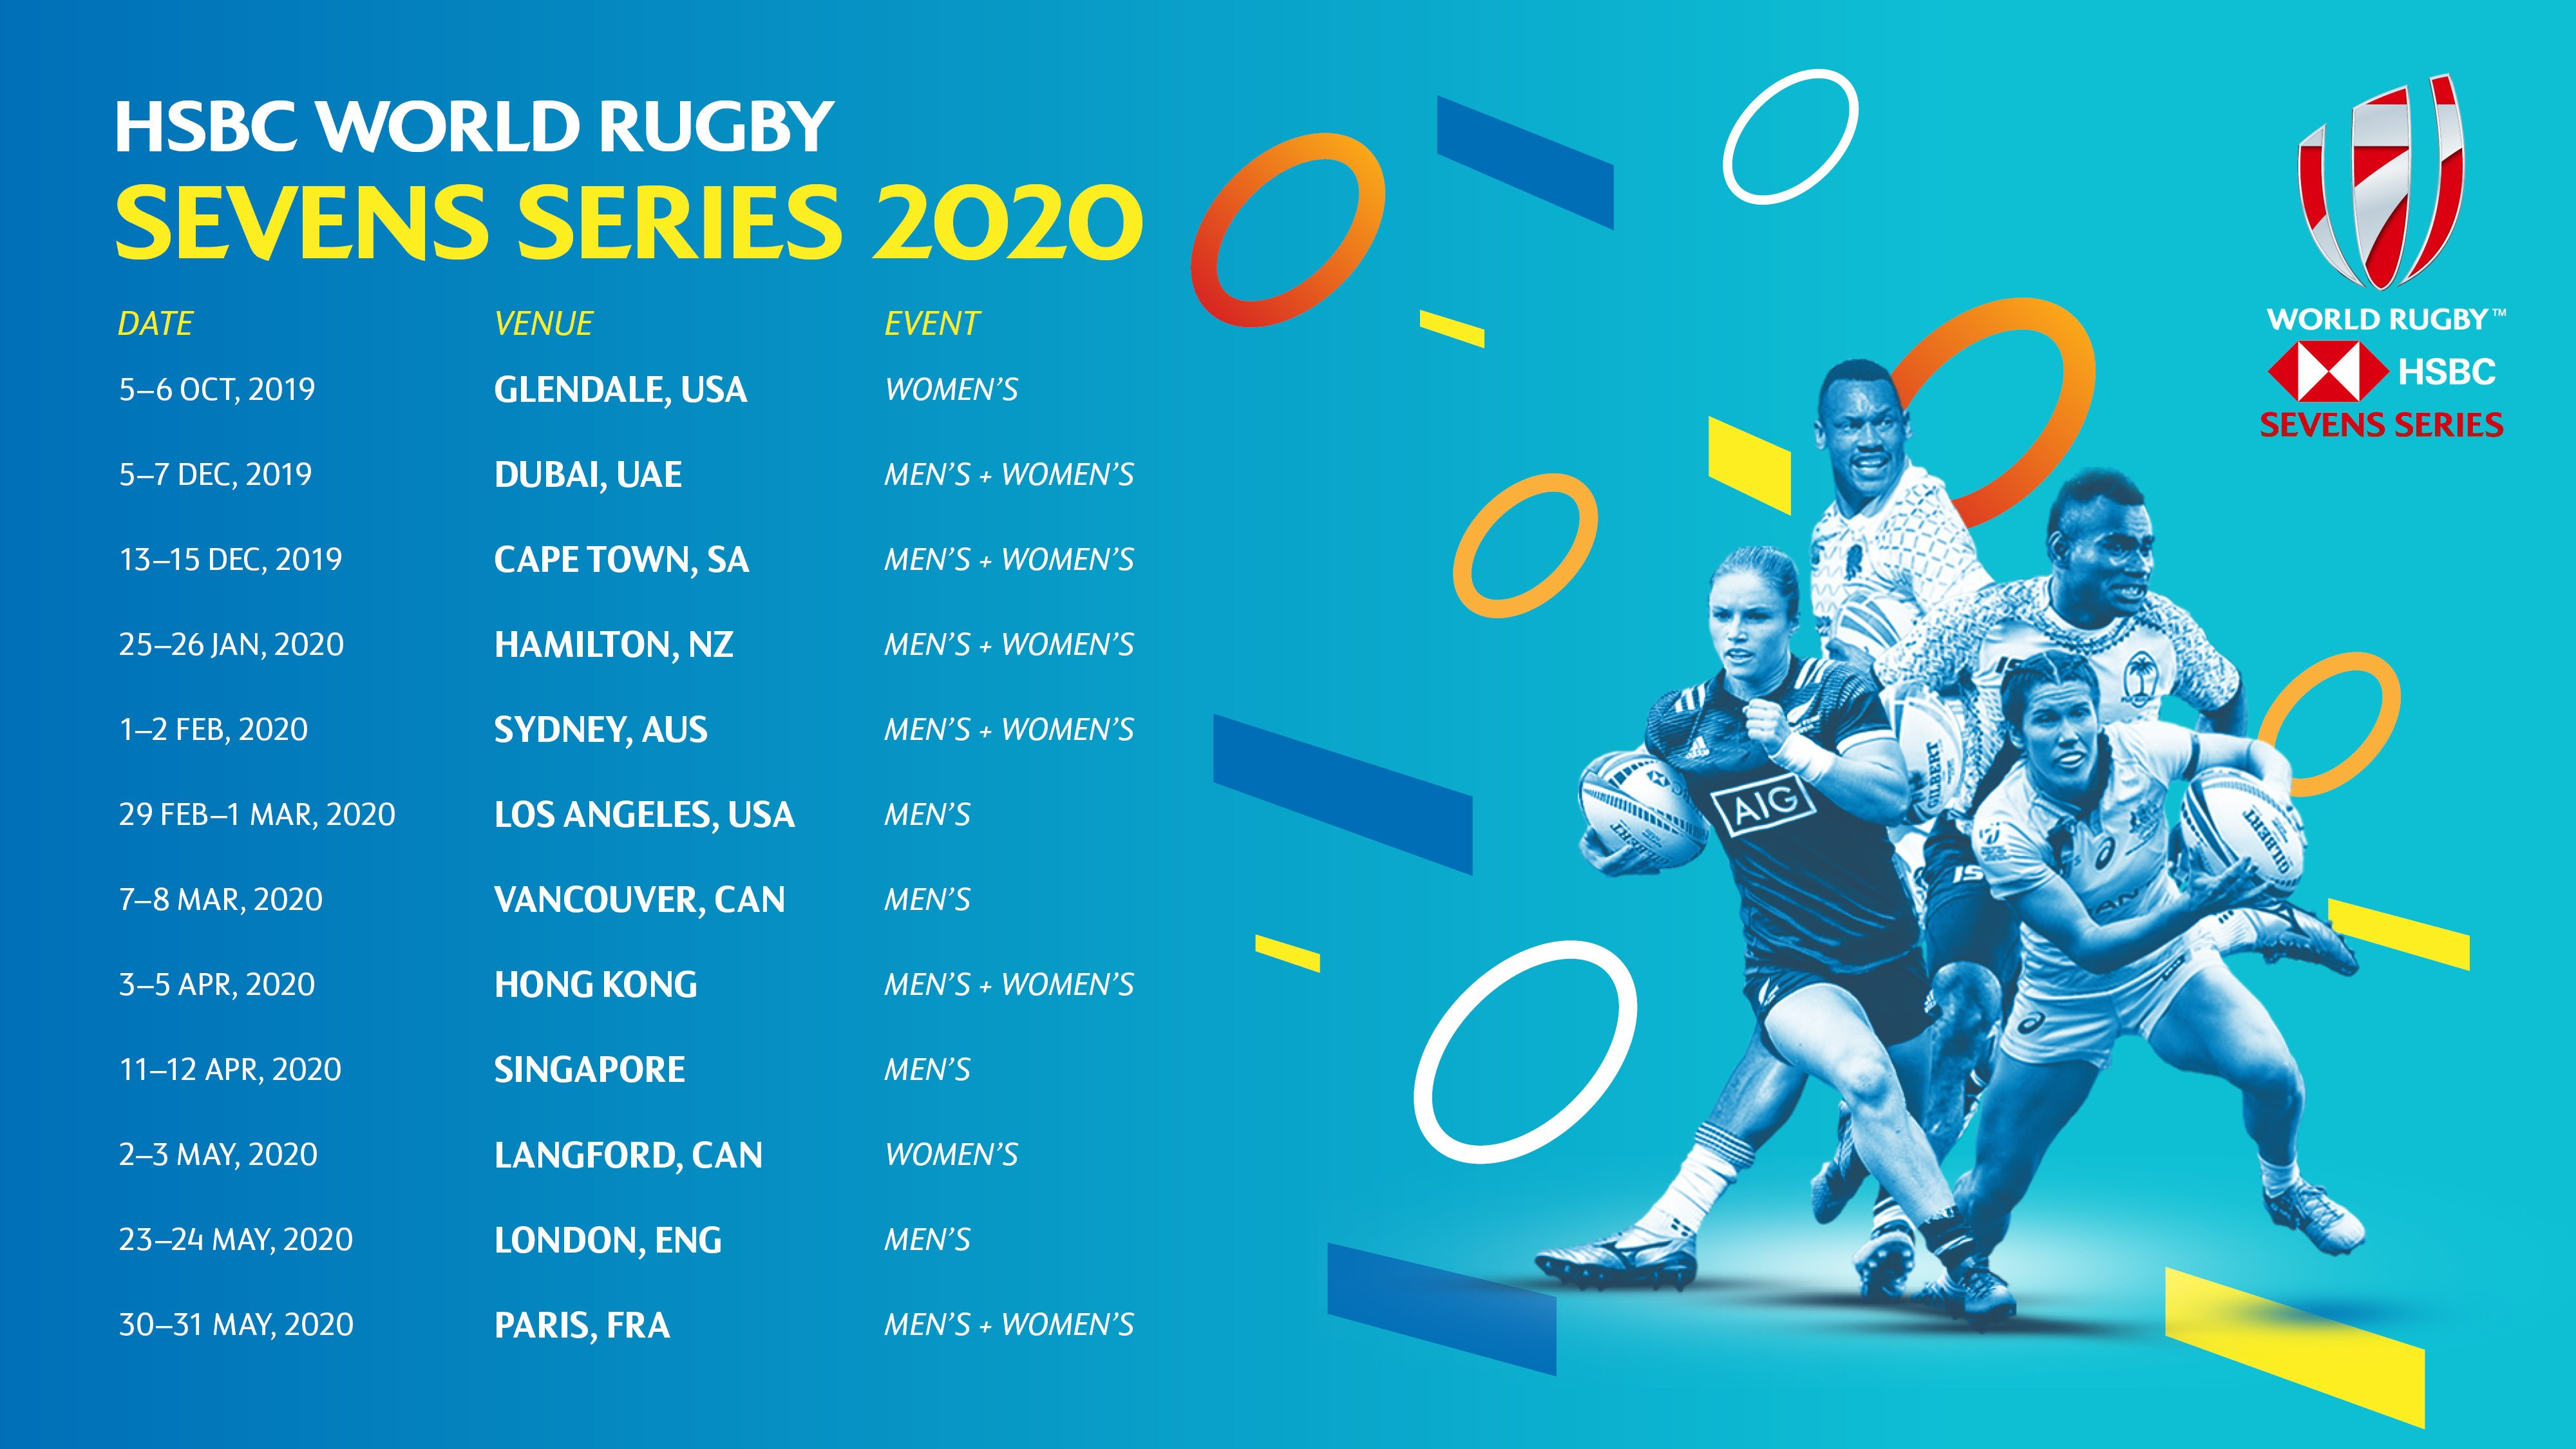 Tournoi Des 6 Nations 2020 Calendrier.Rugby Rugby A 7 Le Calendrier Du Circuit Mondial 2019